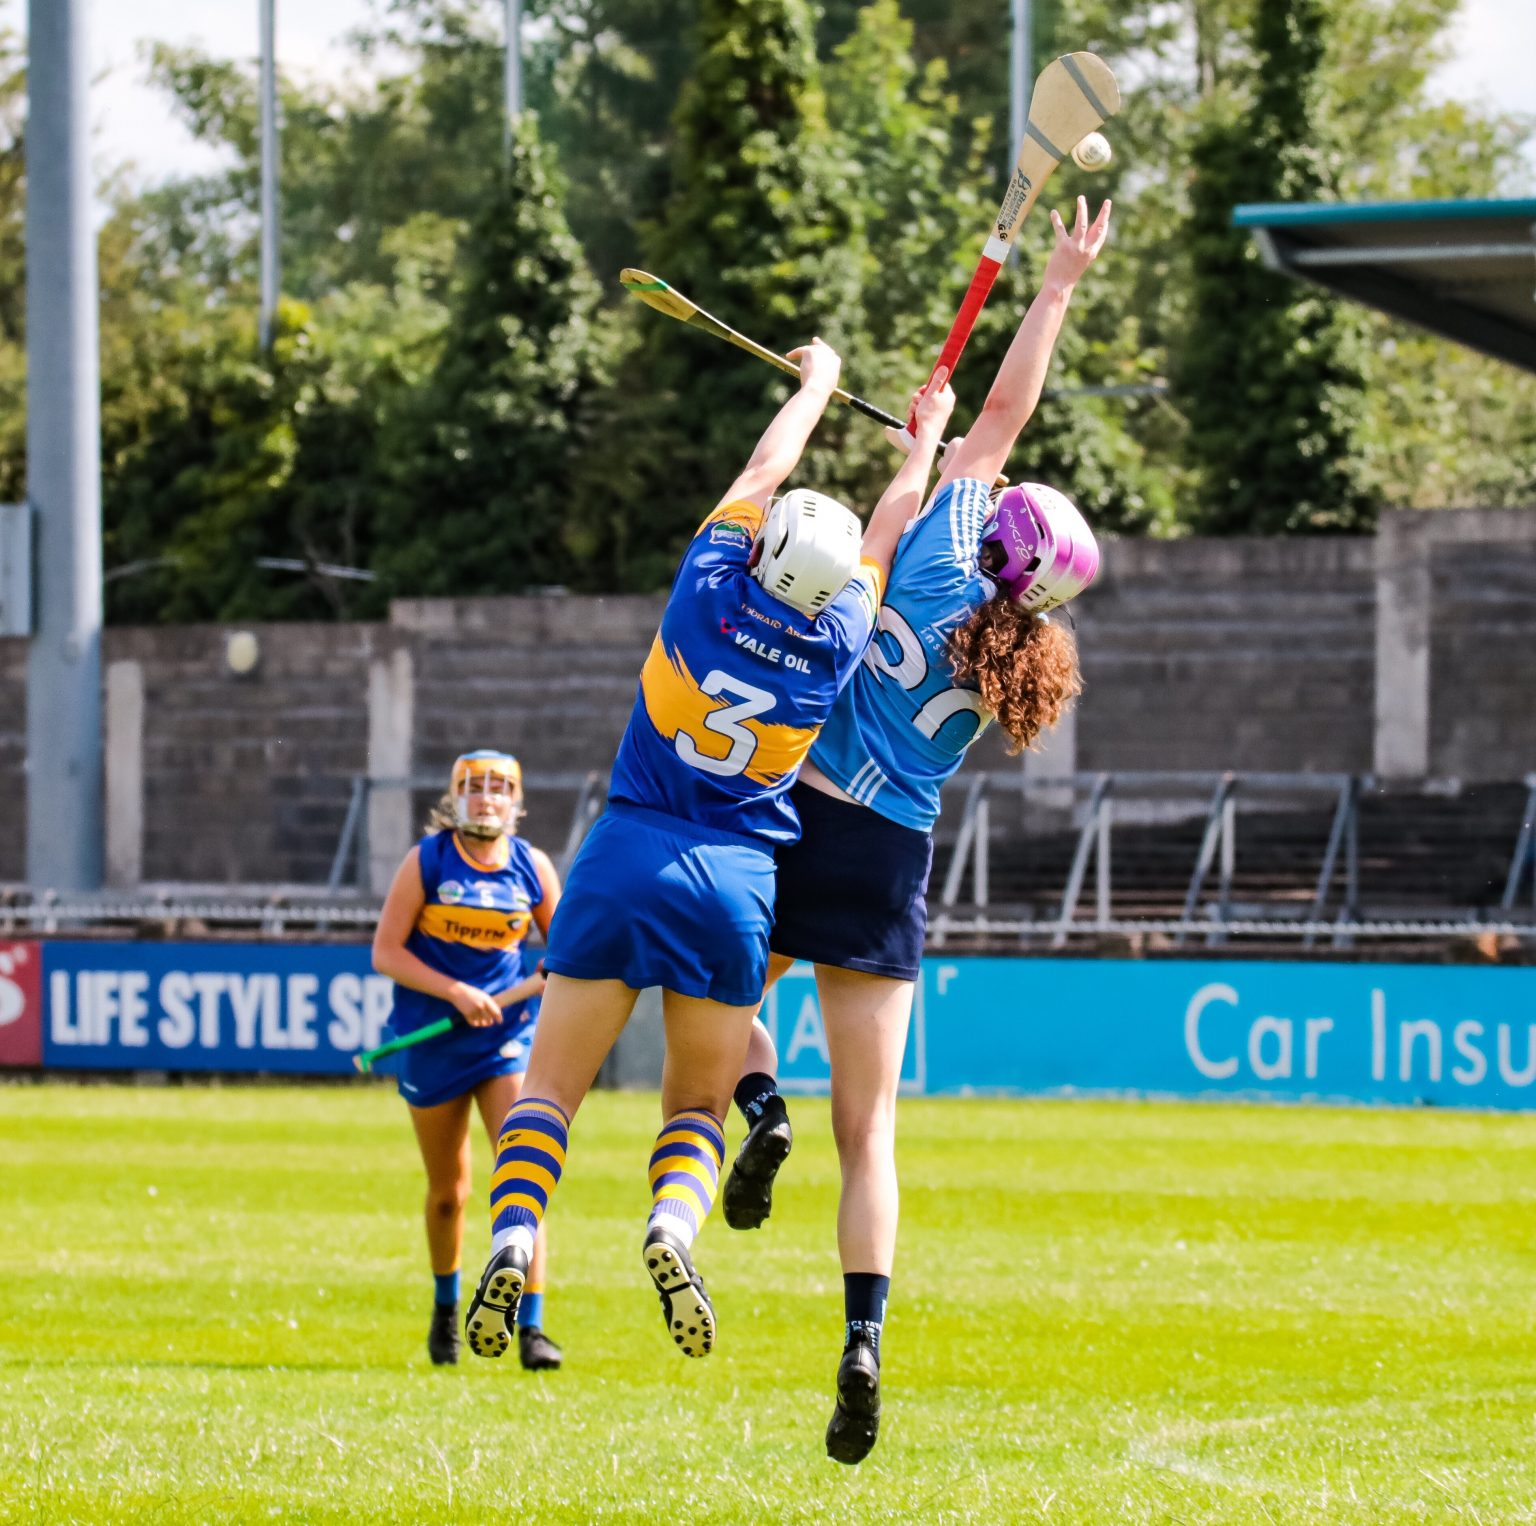 A Dublin Camogie Player wearing a sky blue jersey and pink helmet and a Tipperary player in a blue jersey with yellow band jump for the ball during today's thrilling championship draw